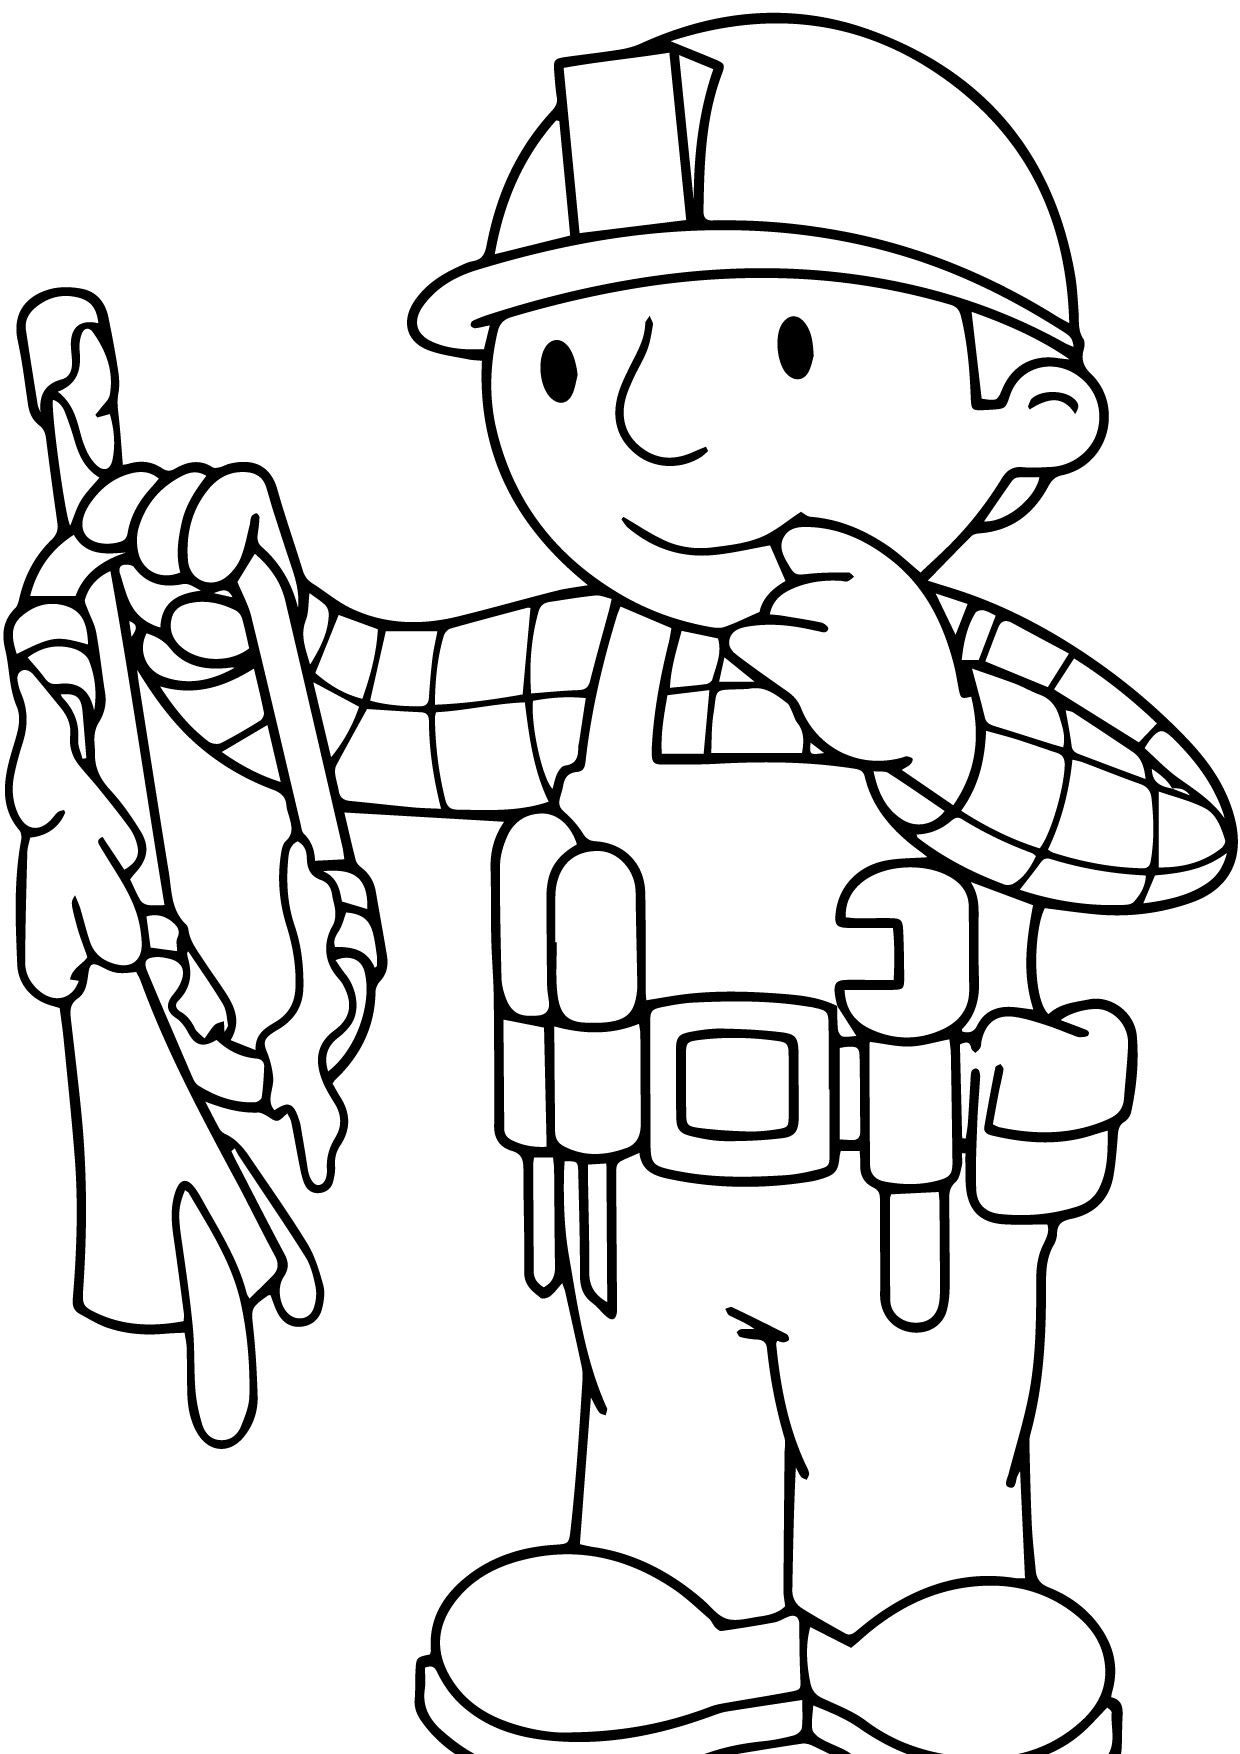 Awesome Coloring Page 21 09 Check More At